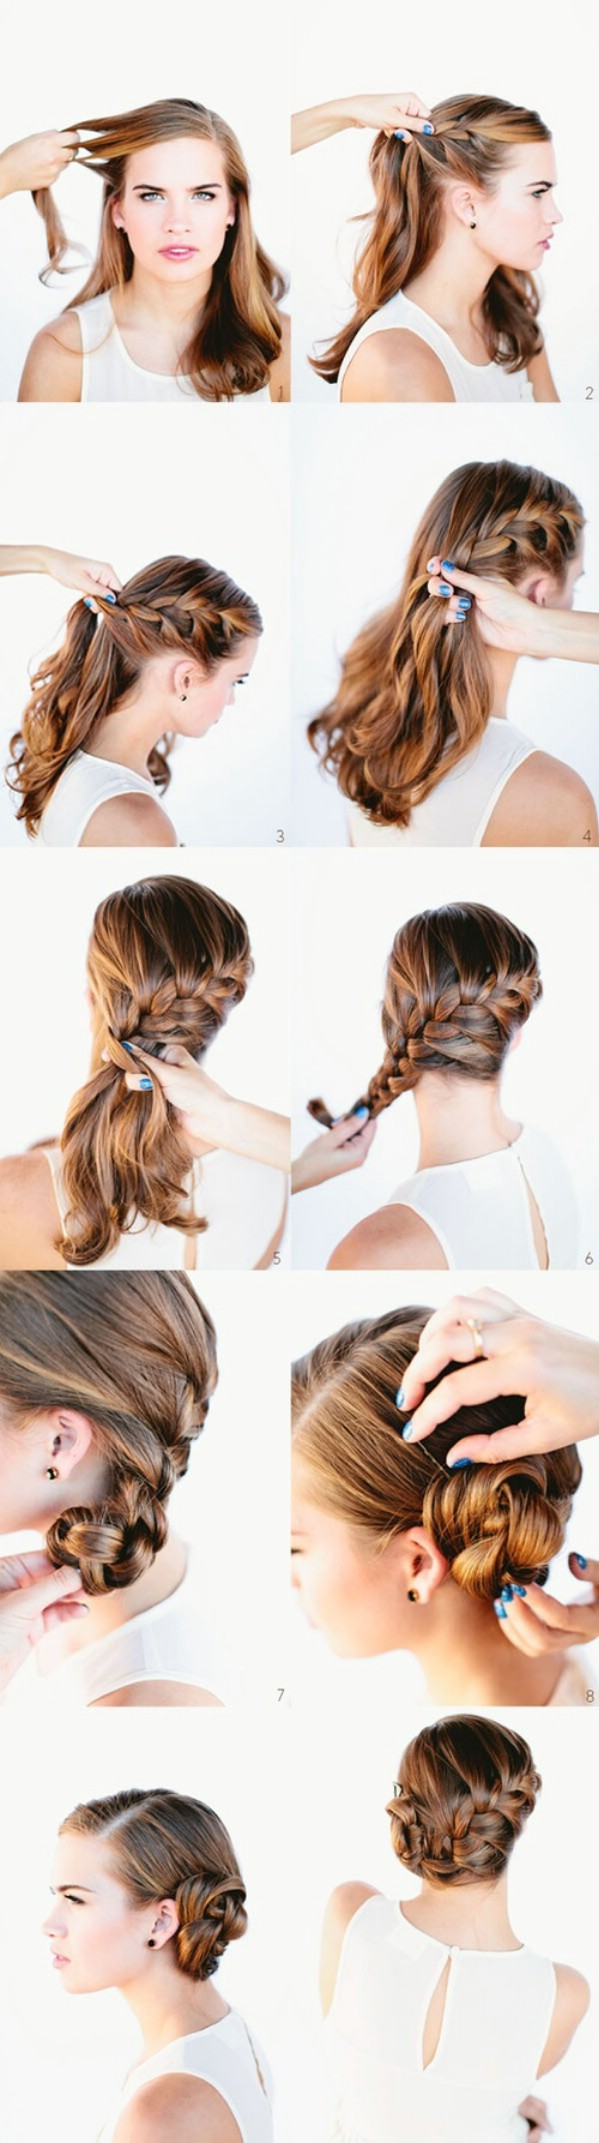 braid hairstyles with bangs photo - 7